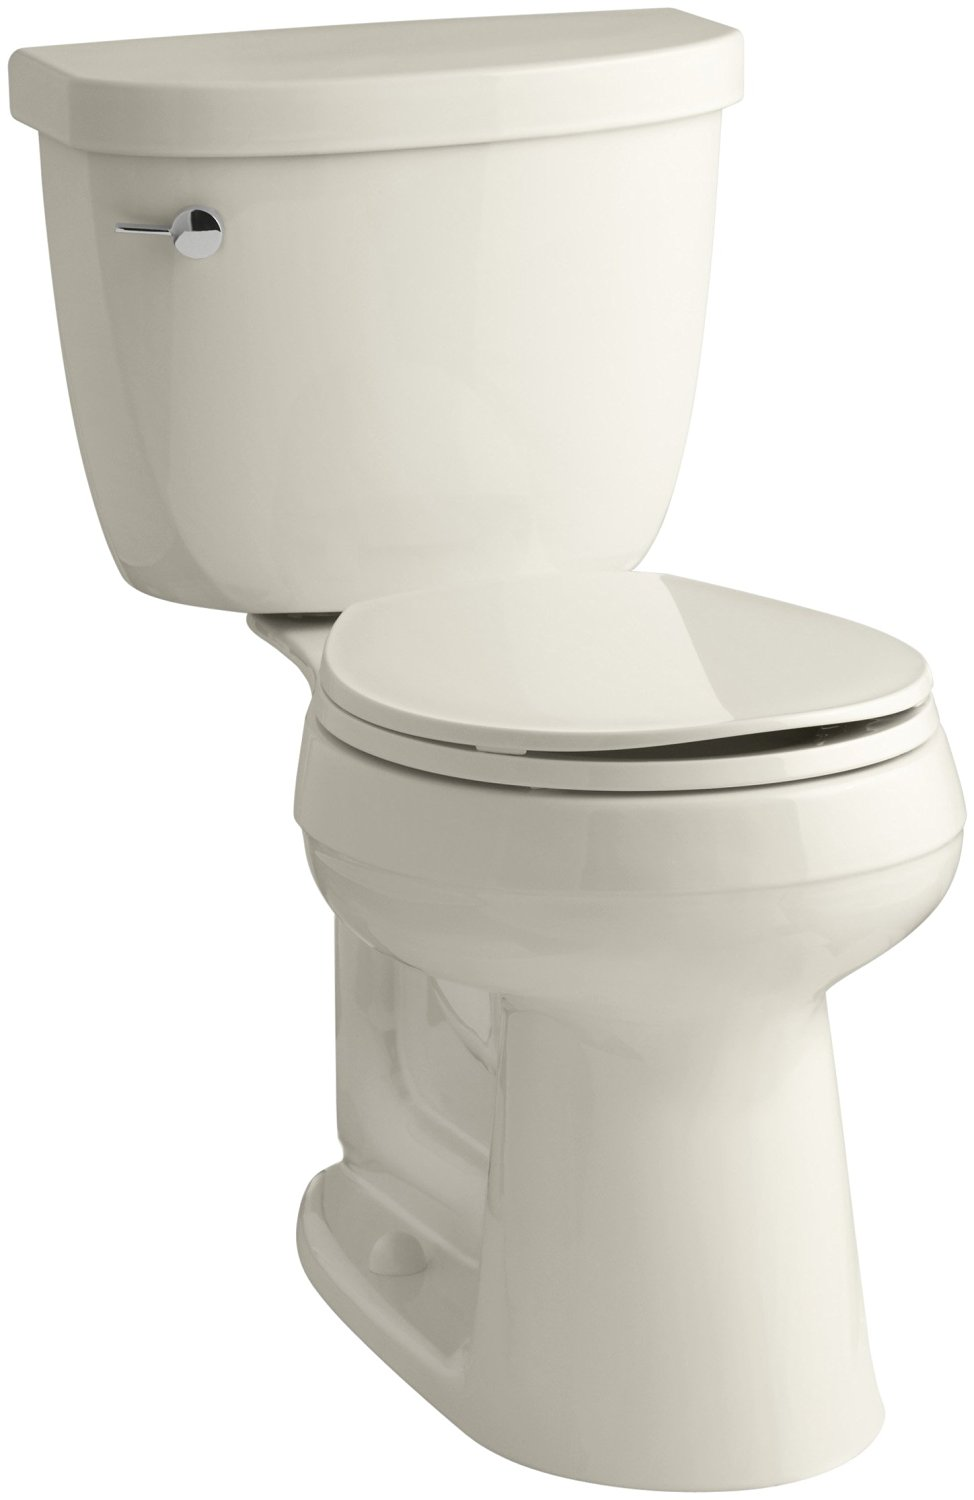 Top 10 Best Kohler Cimarron Toilet Reviews Your 2019 Guide